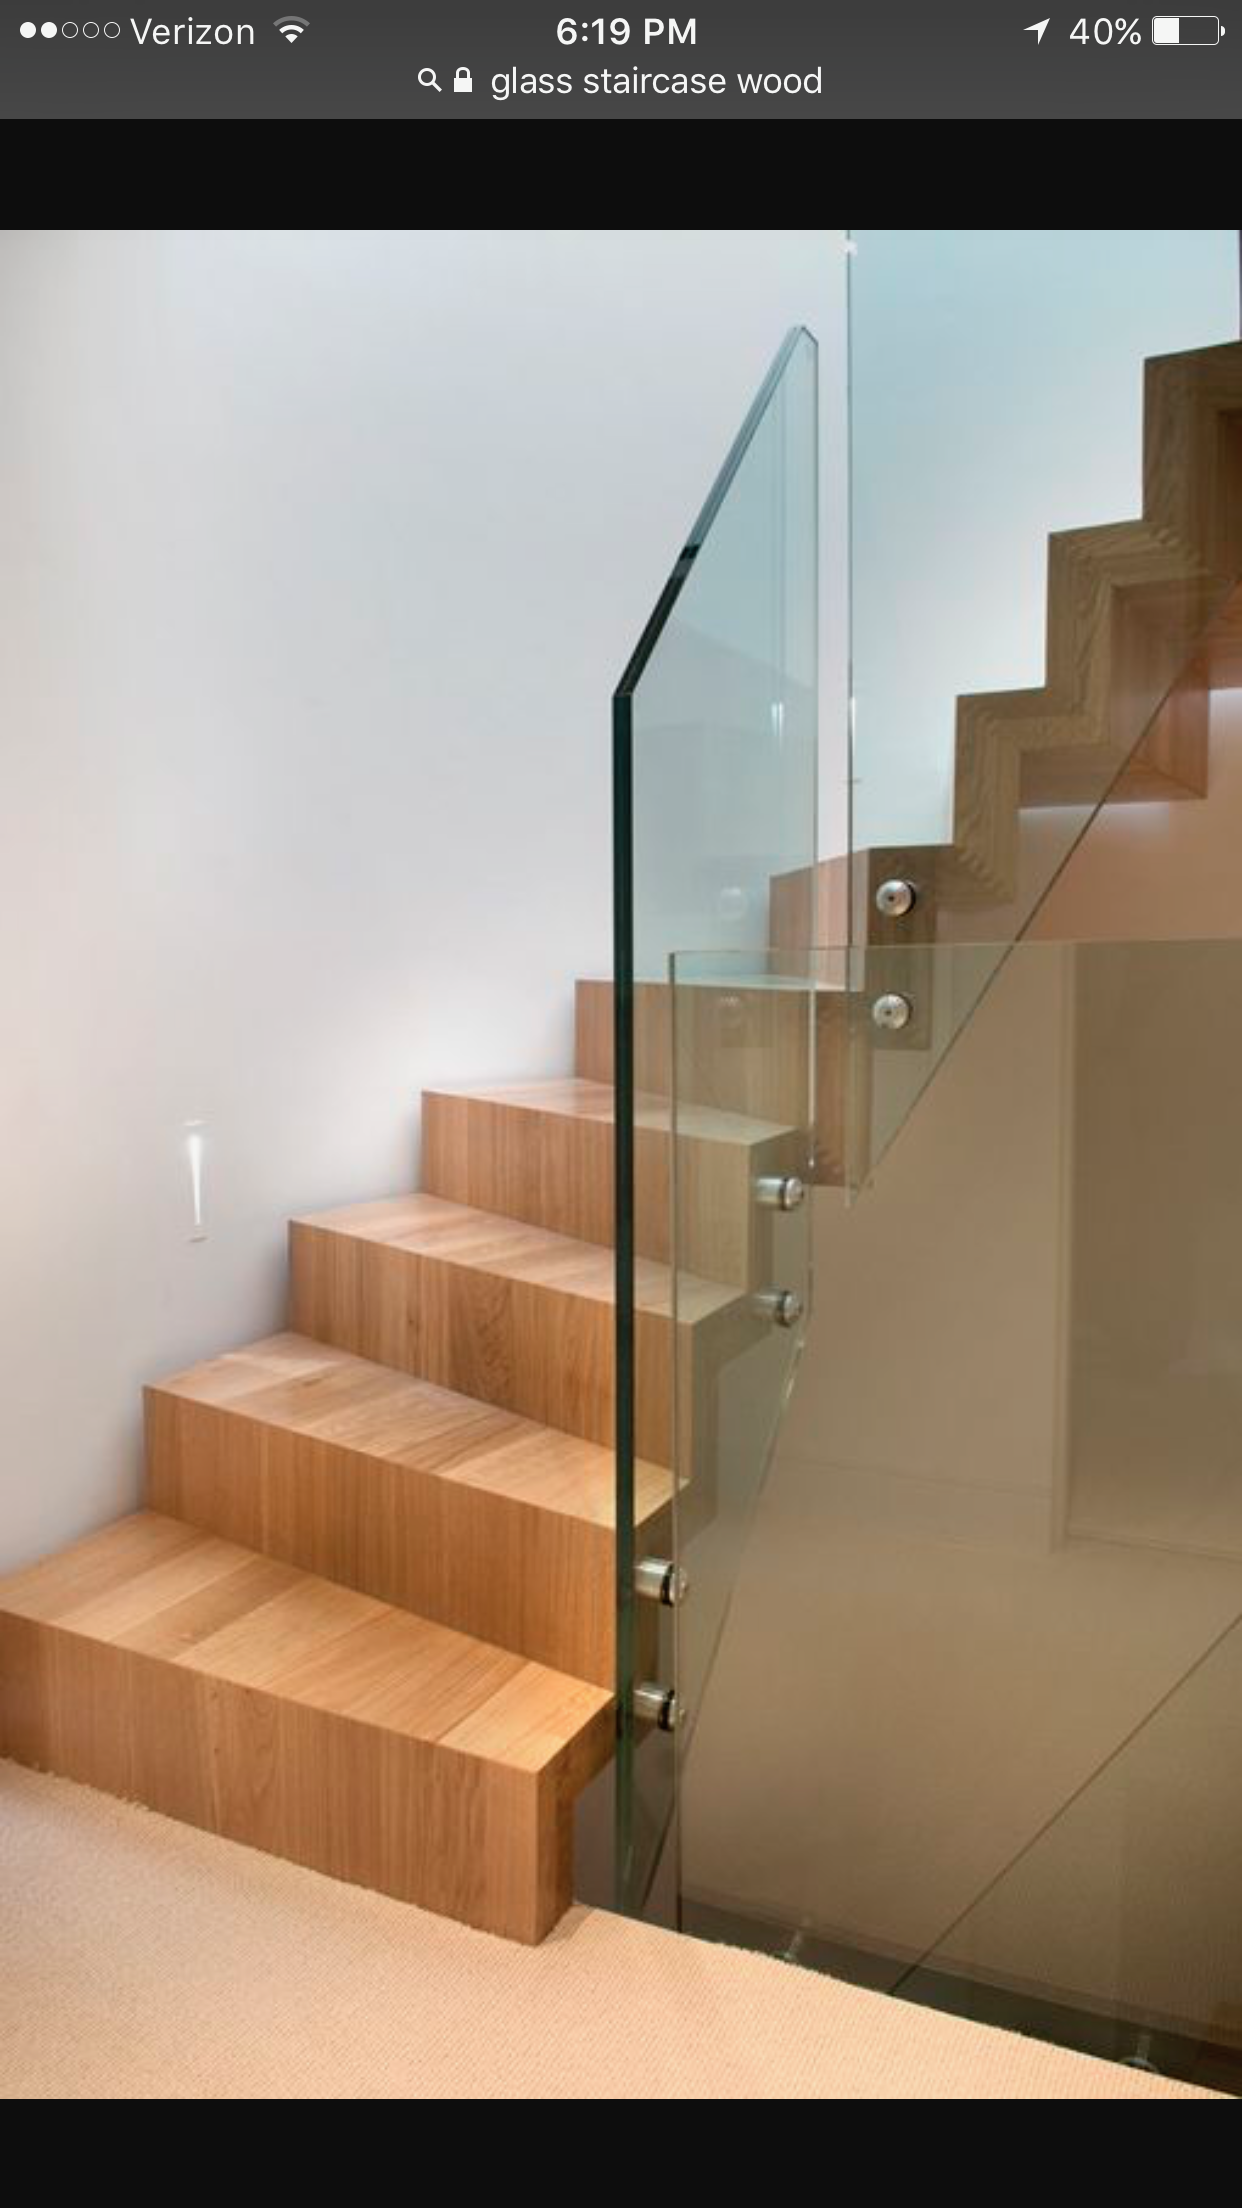 Find this Pin and more on Staircase House Design by CarineAZNAM.